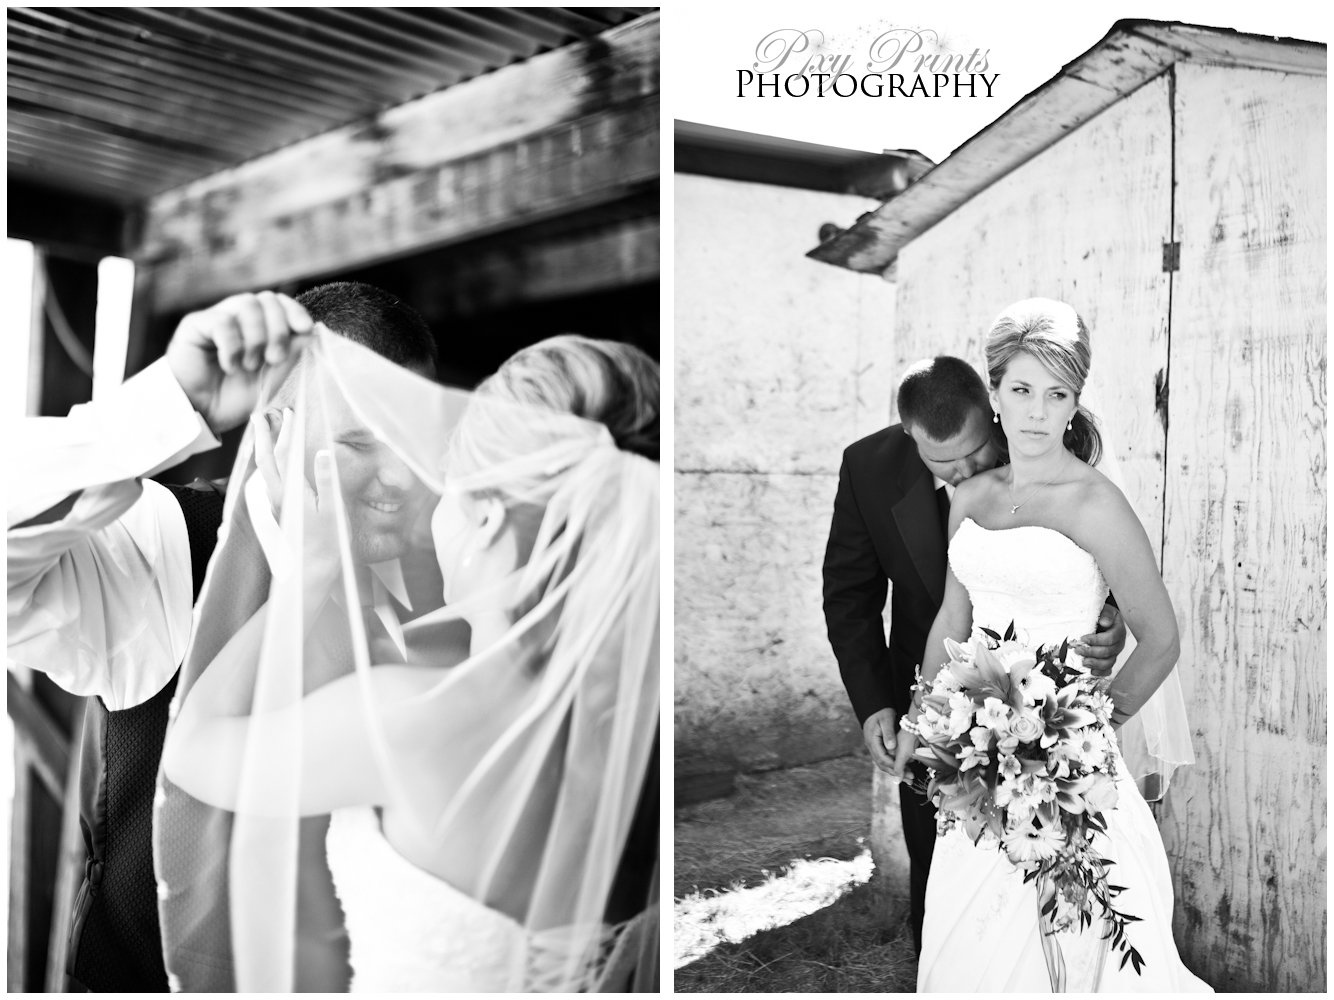 10 Attractive Bride And Groom Photo Ideas posing ideas for bride and groom pixy prints photography 2020